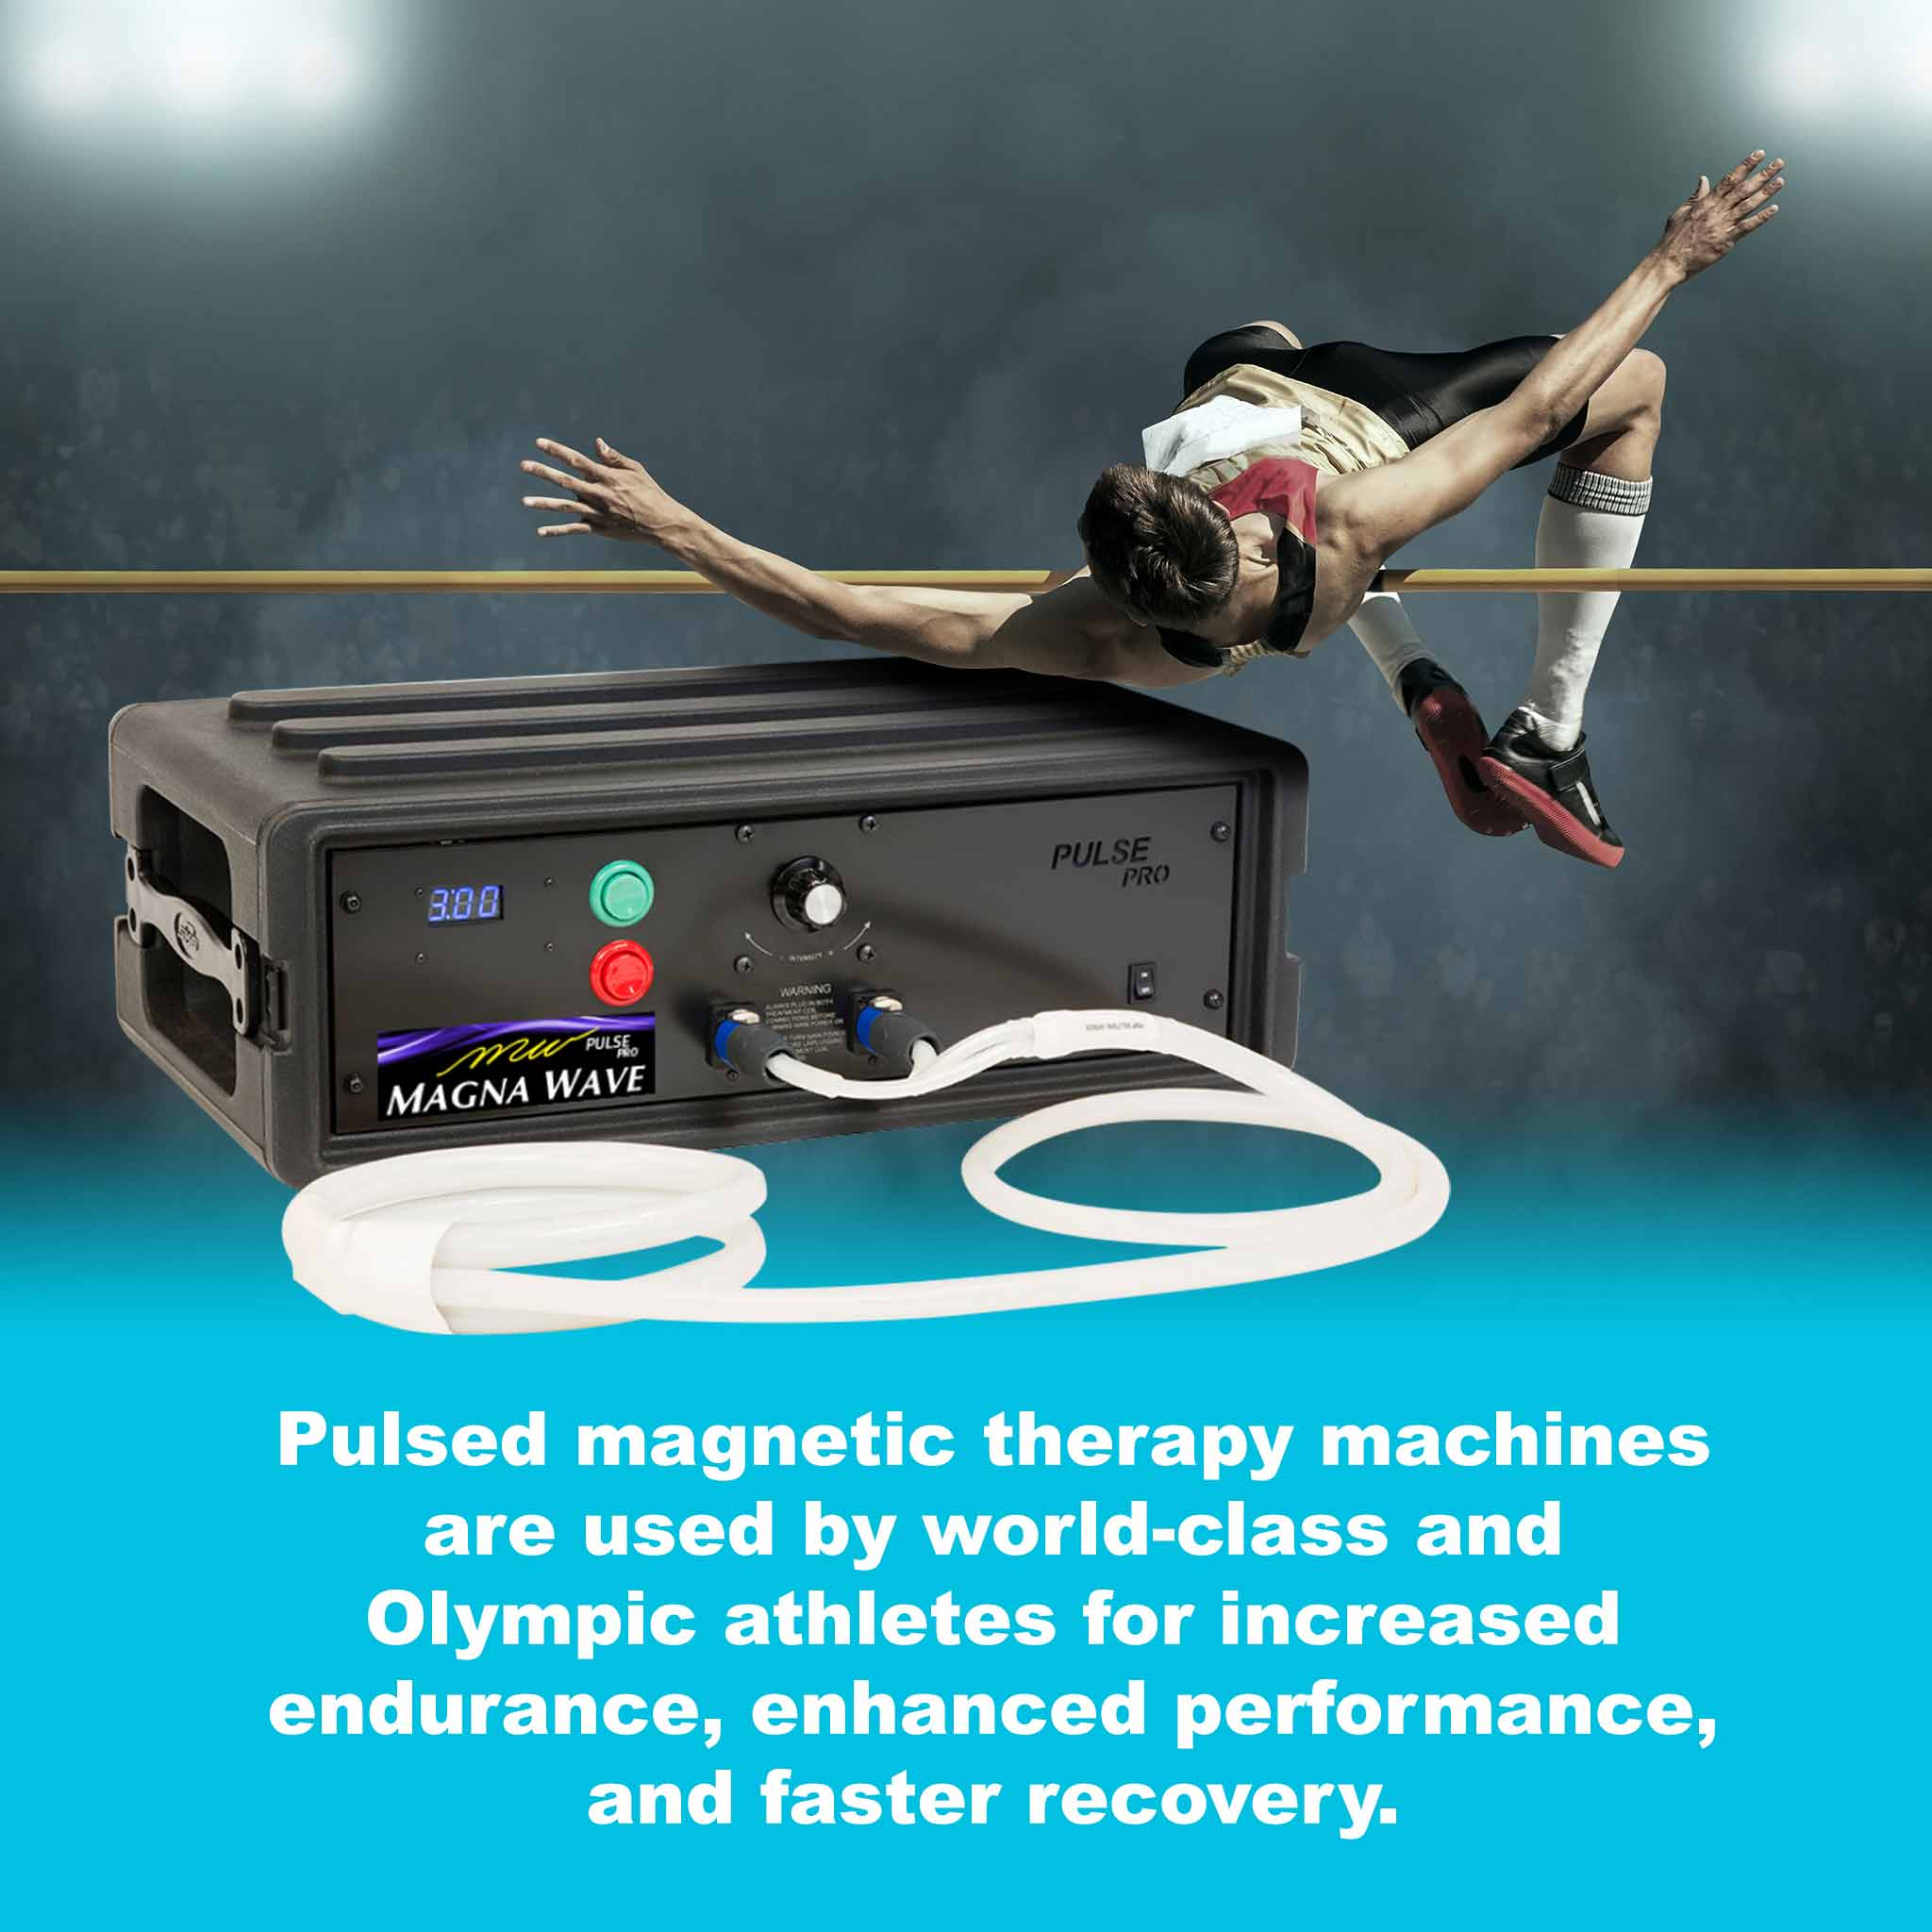 Pulsed magnetic therapy machines are used by world-class and Olympic athletes for increased endurance, enhanced performance, and faster recovery.